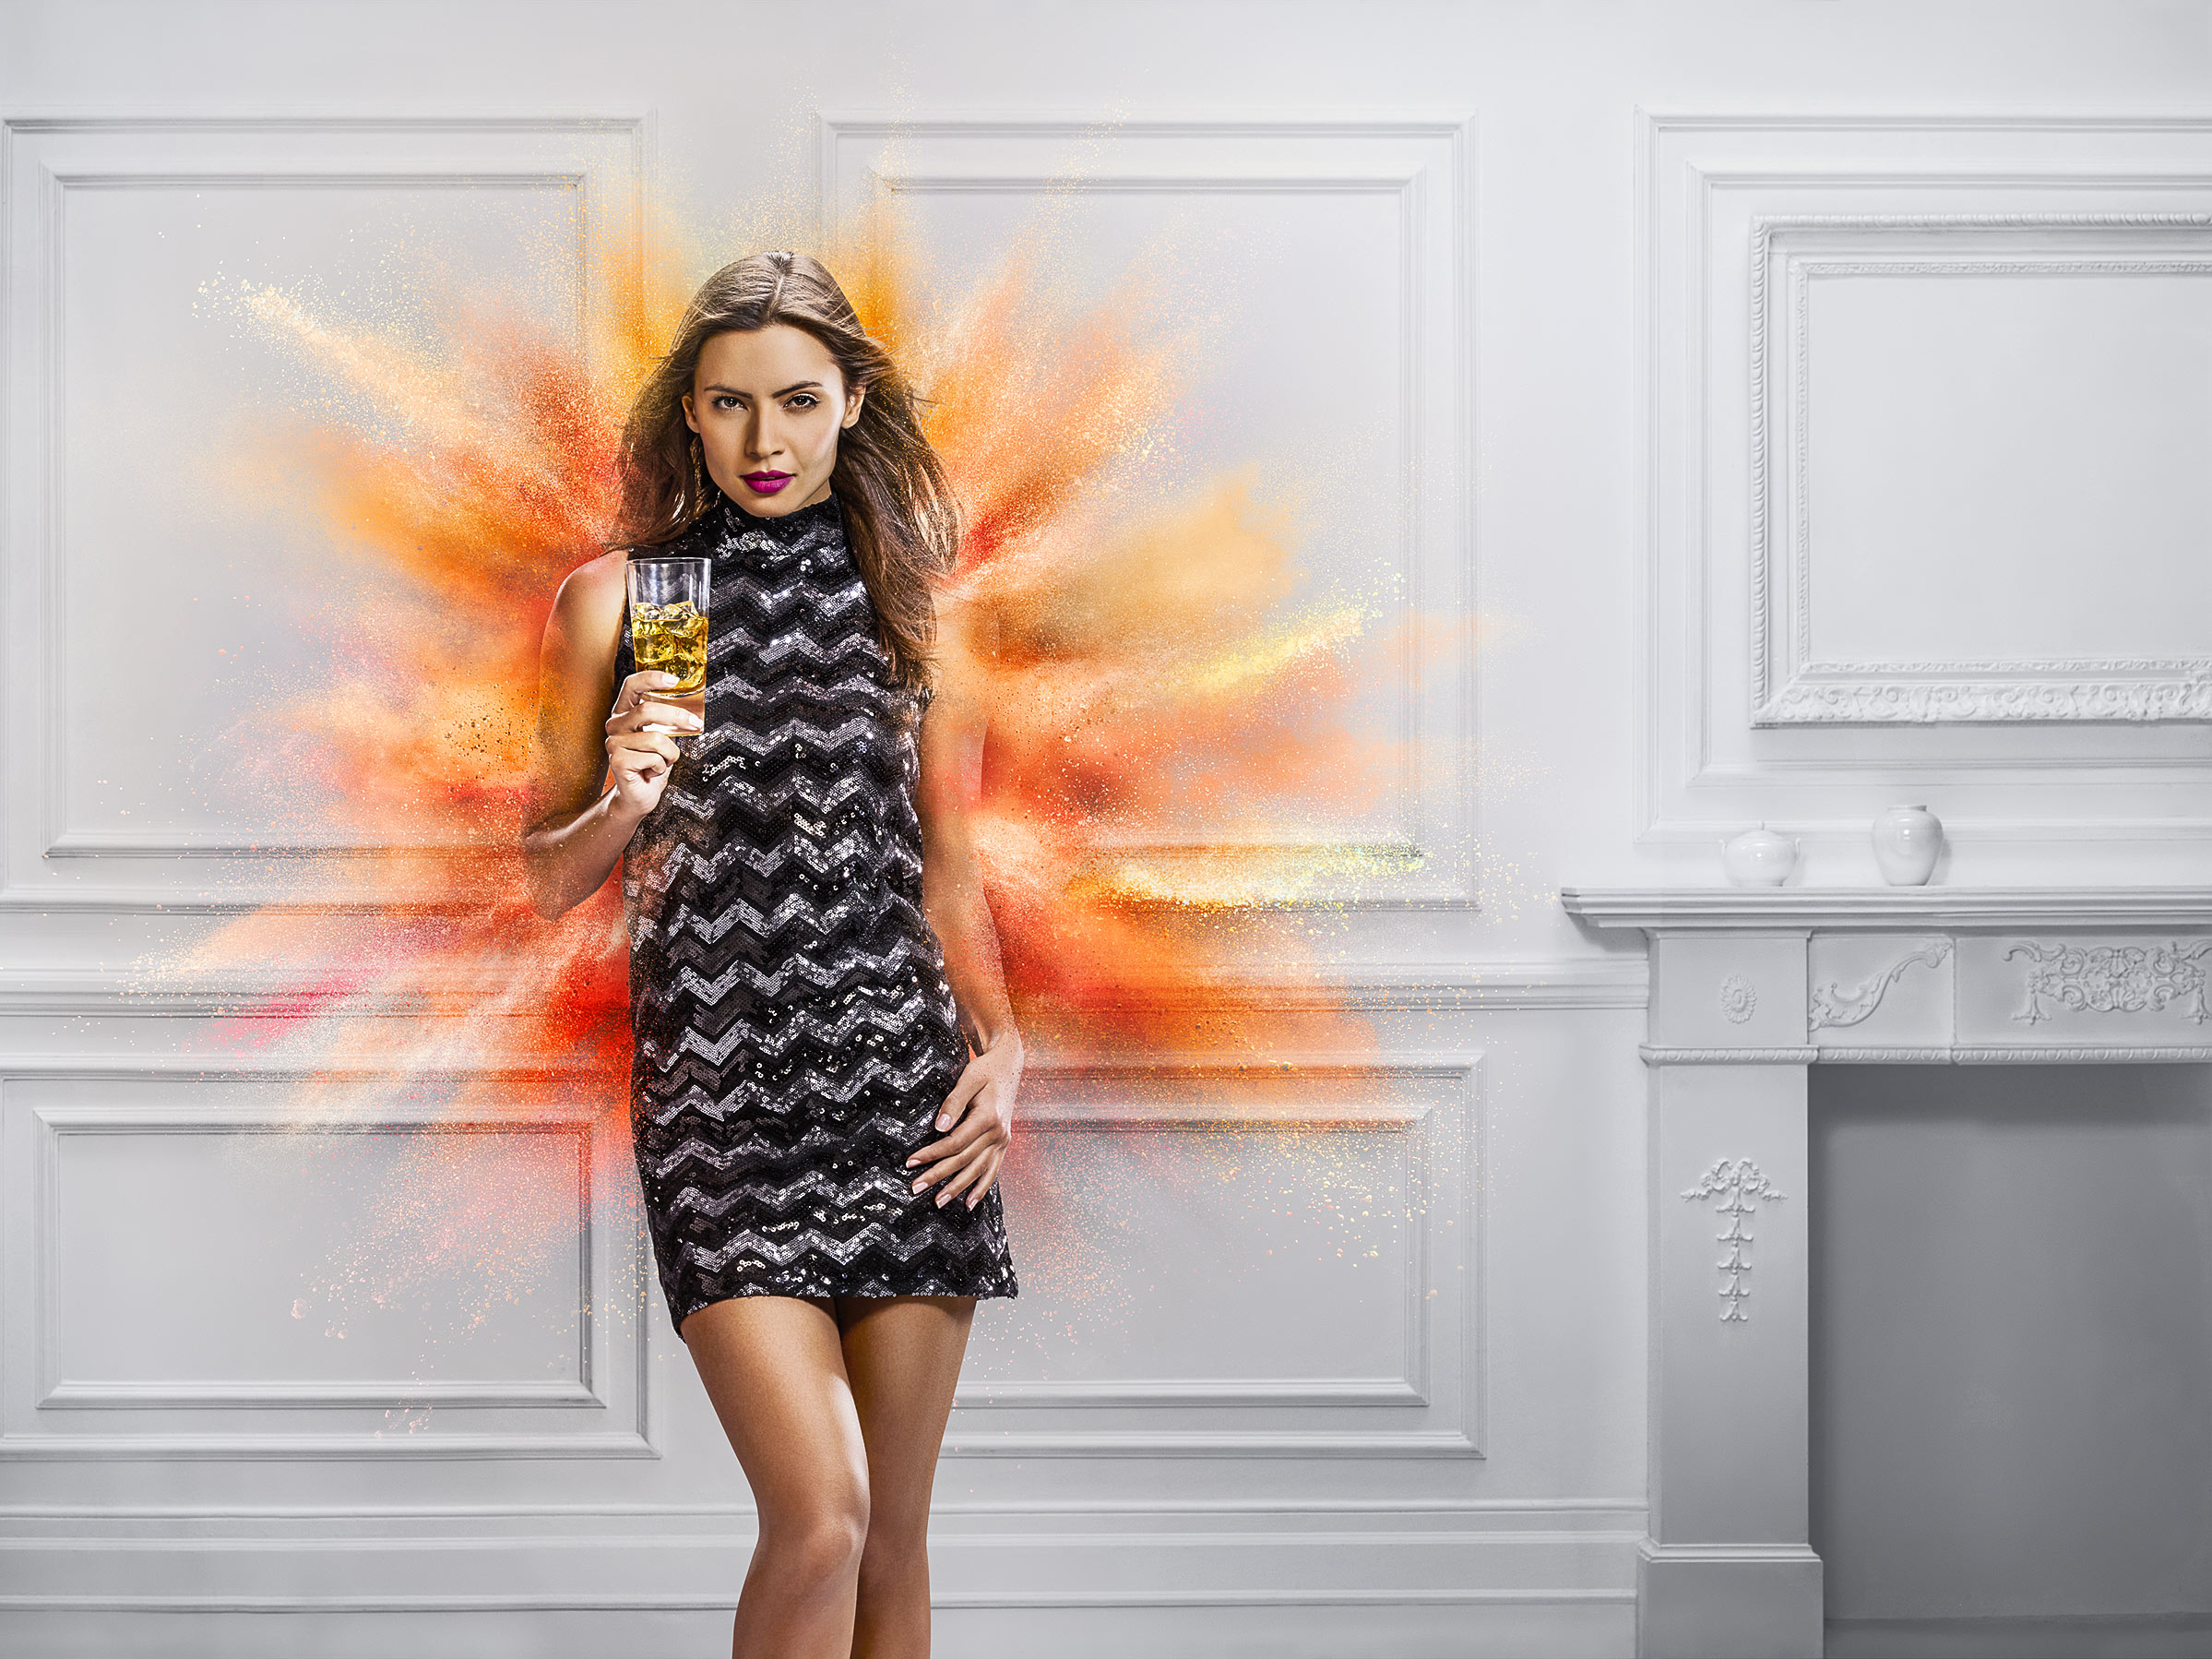 Johnnie_Walker_powder_explosion_tank_retouching_LOVE_agency_manchester_london_02